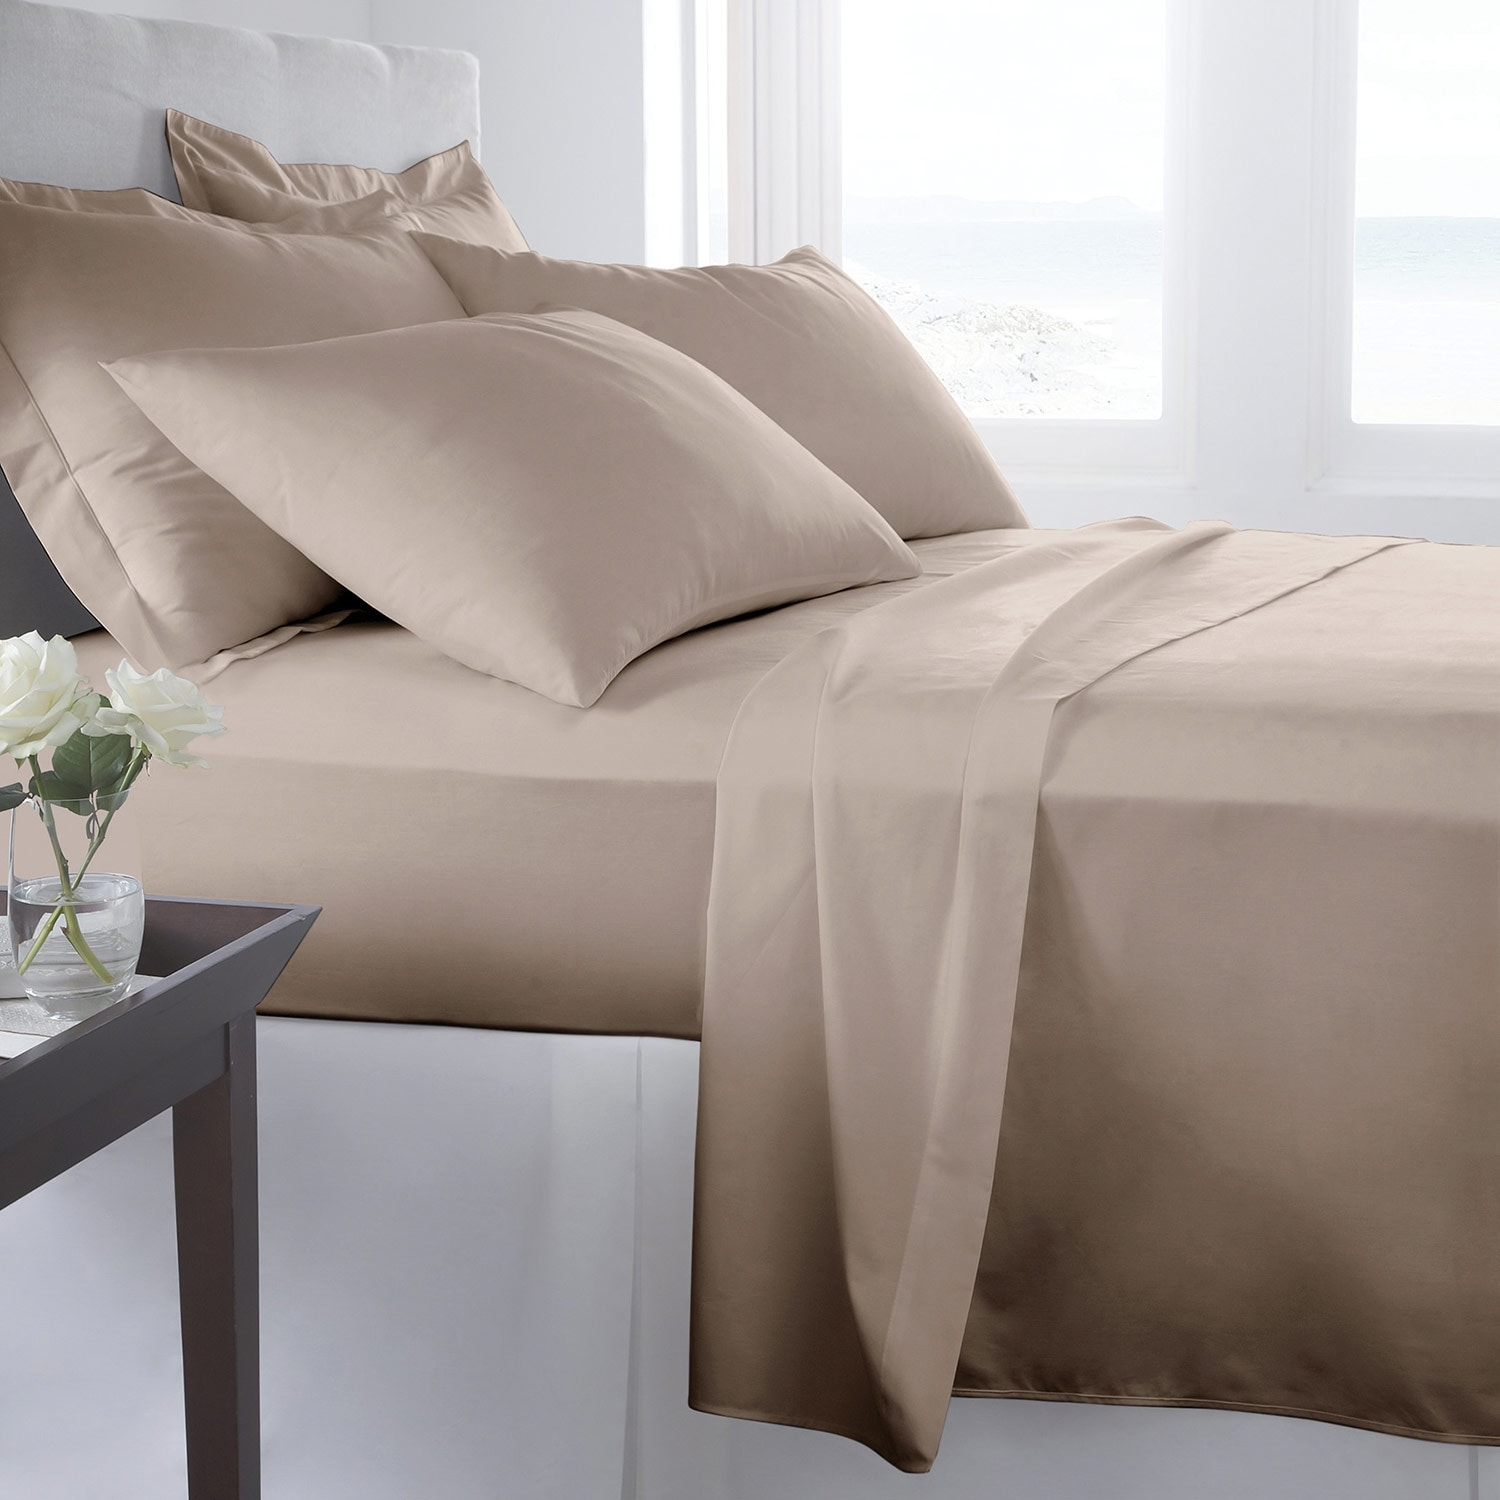 Mattresses and Bedding - 300 Thread Count King Sheet Set - Taupe